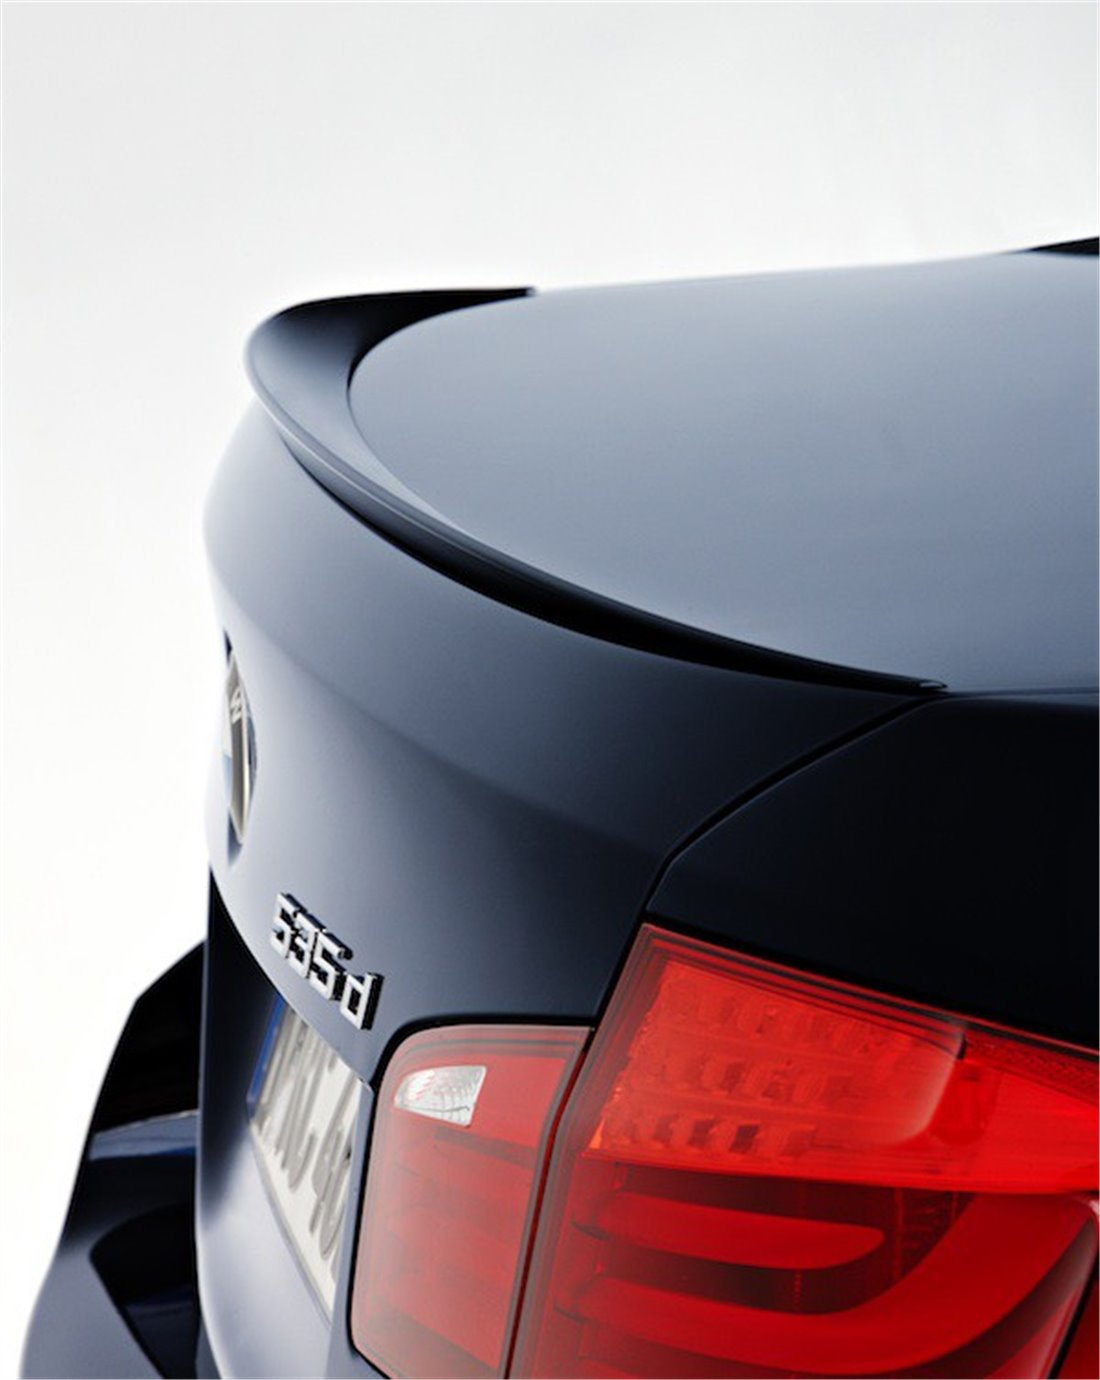 Achterspoiler BMW 5 serie F10 ABS M-tech